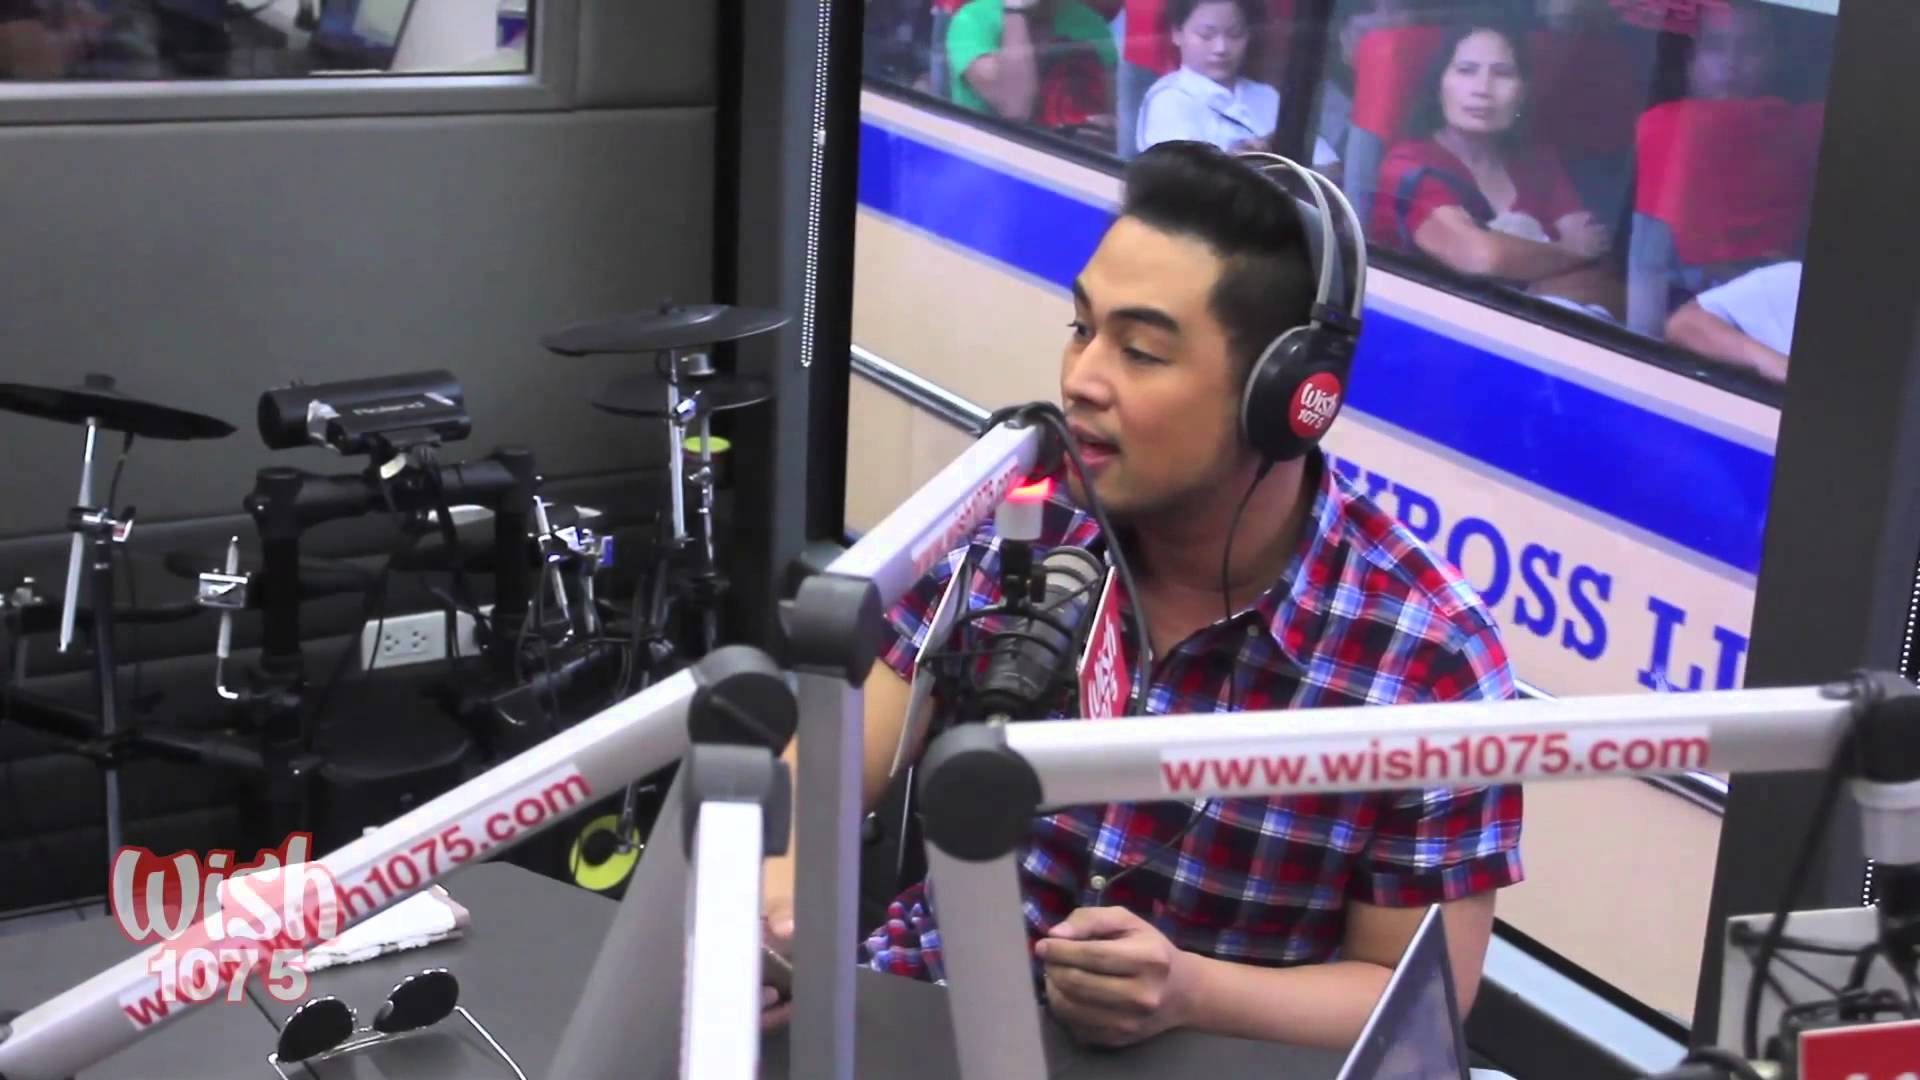 Didn't We Almost Have It All by Jed Madela